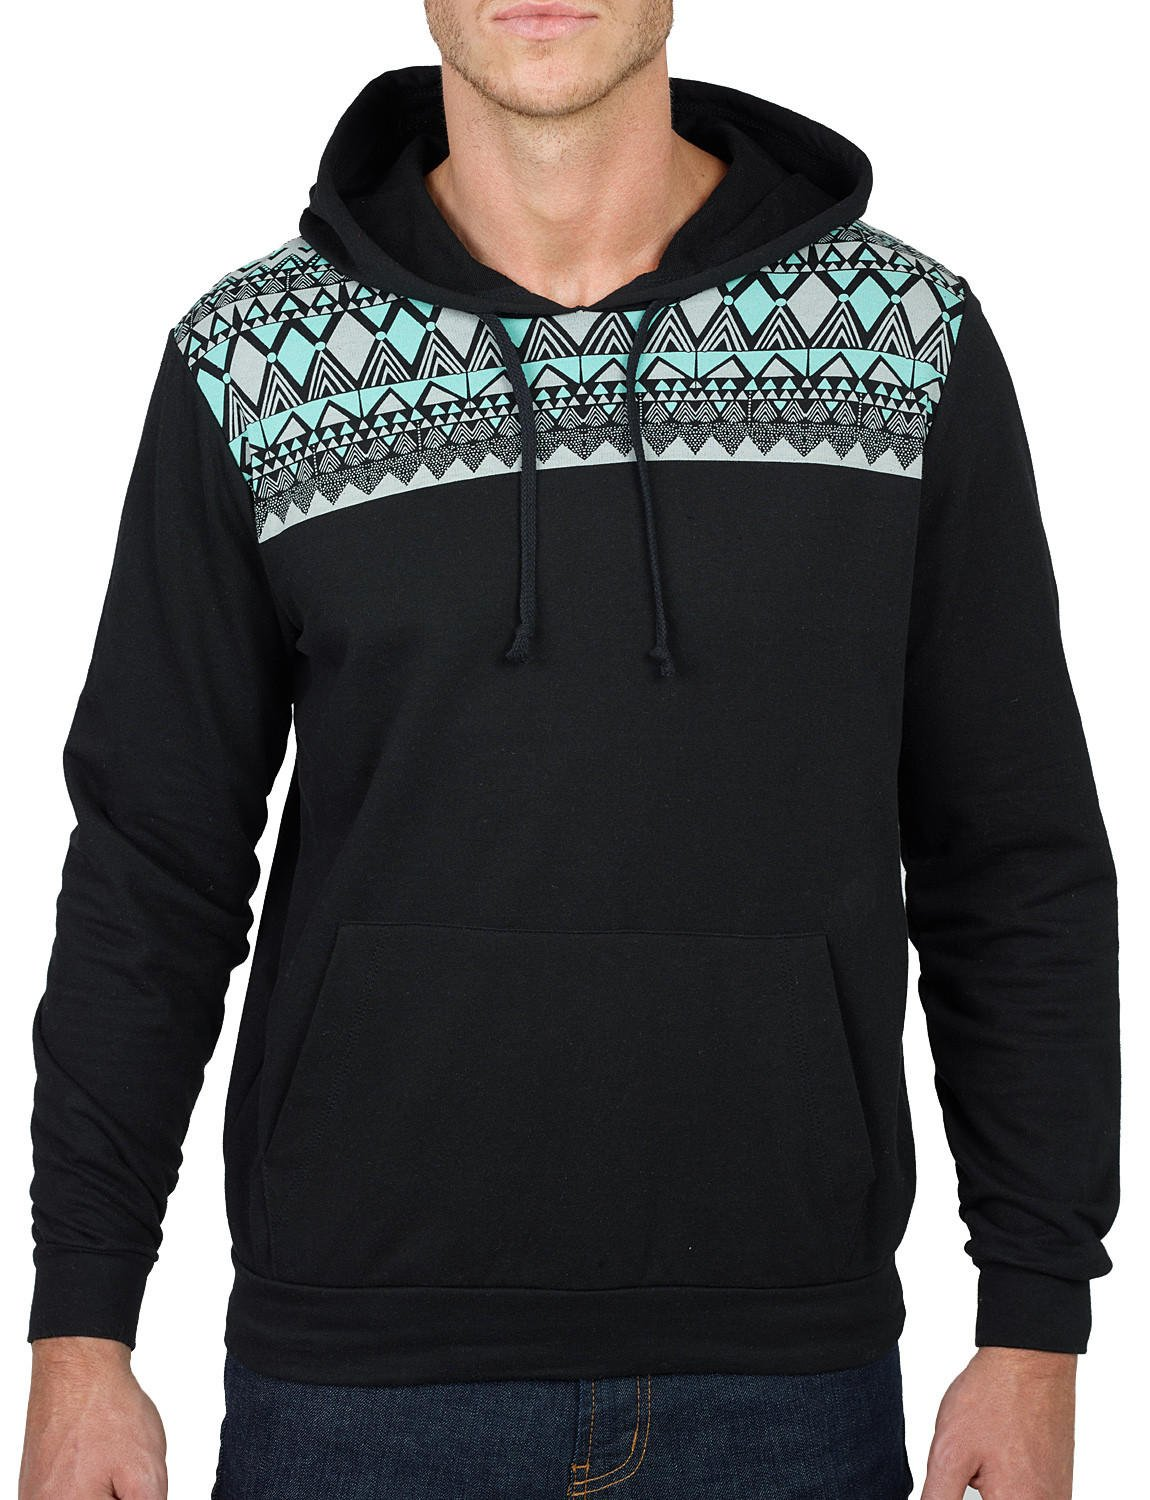 Mens Lightweight Aztec Print Pullover from LE3NO